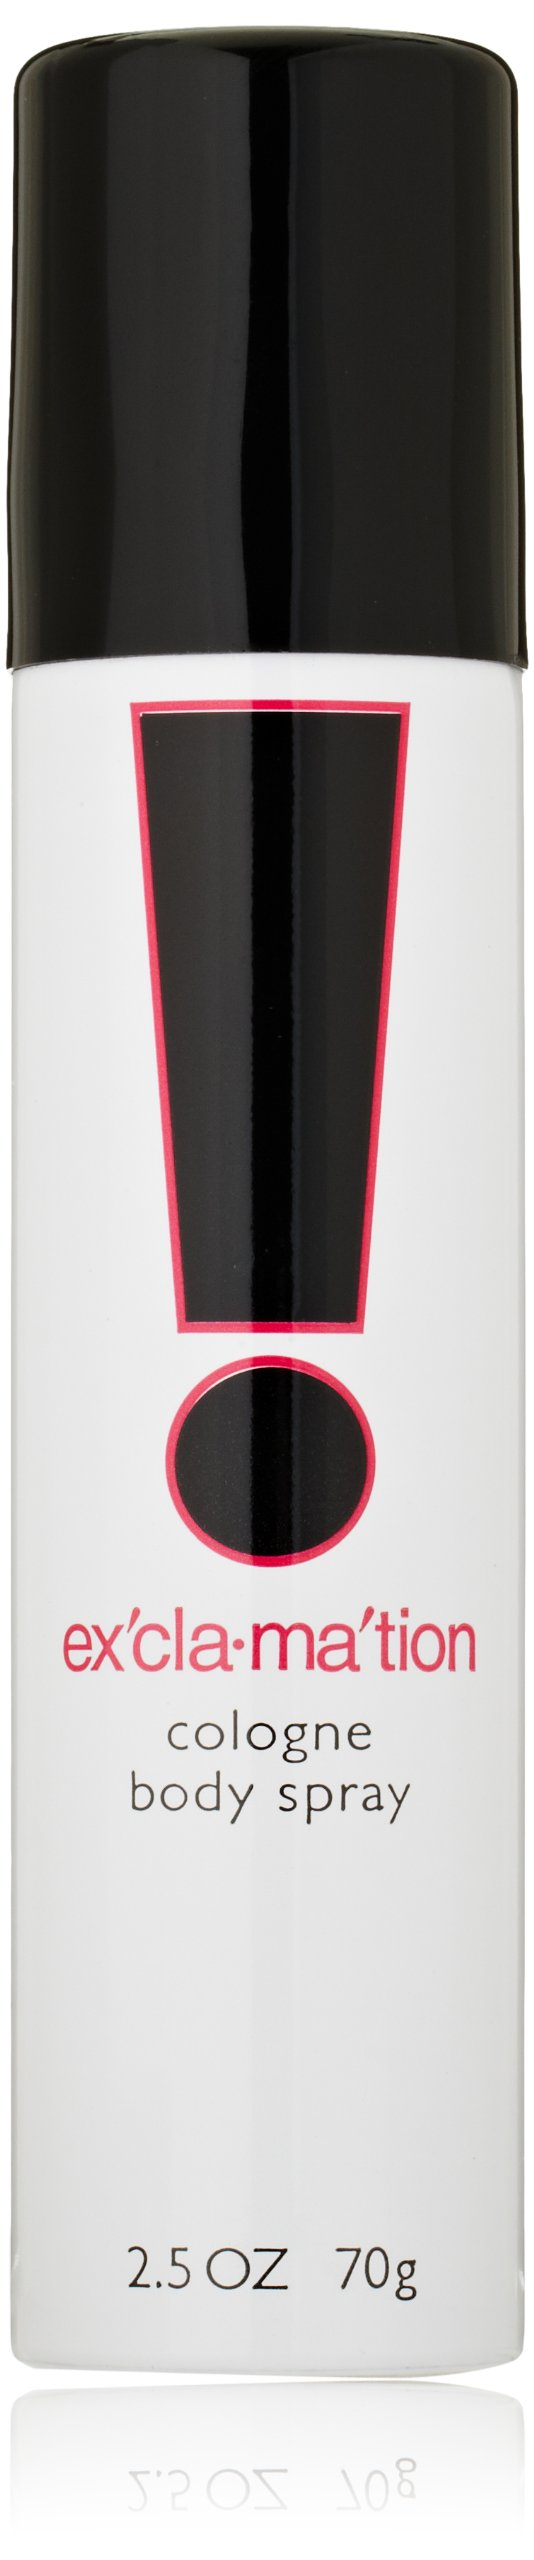 Amazoncom Exclamation By Coty For Women Cologne Spray 17 Oz